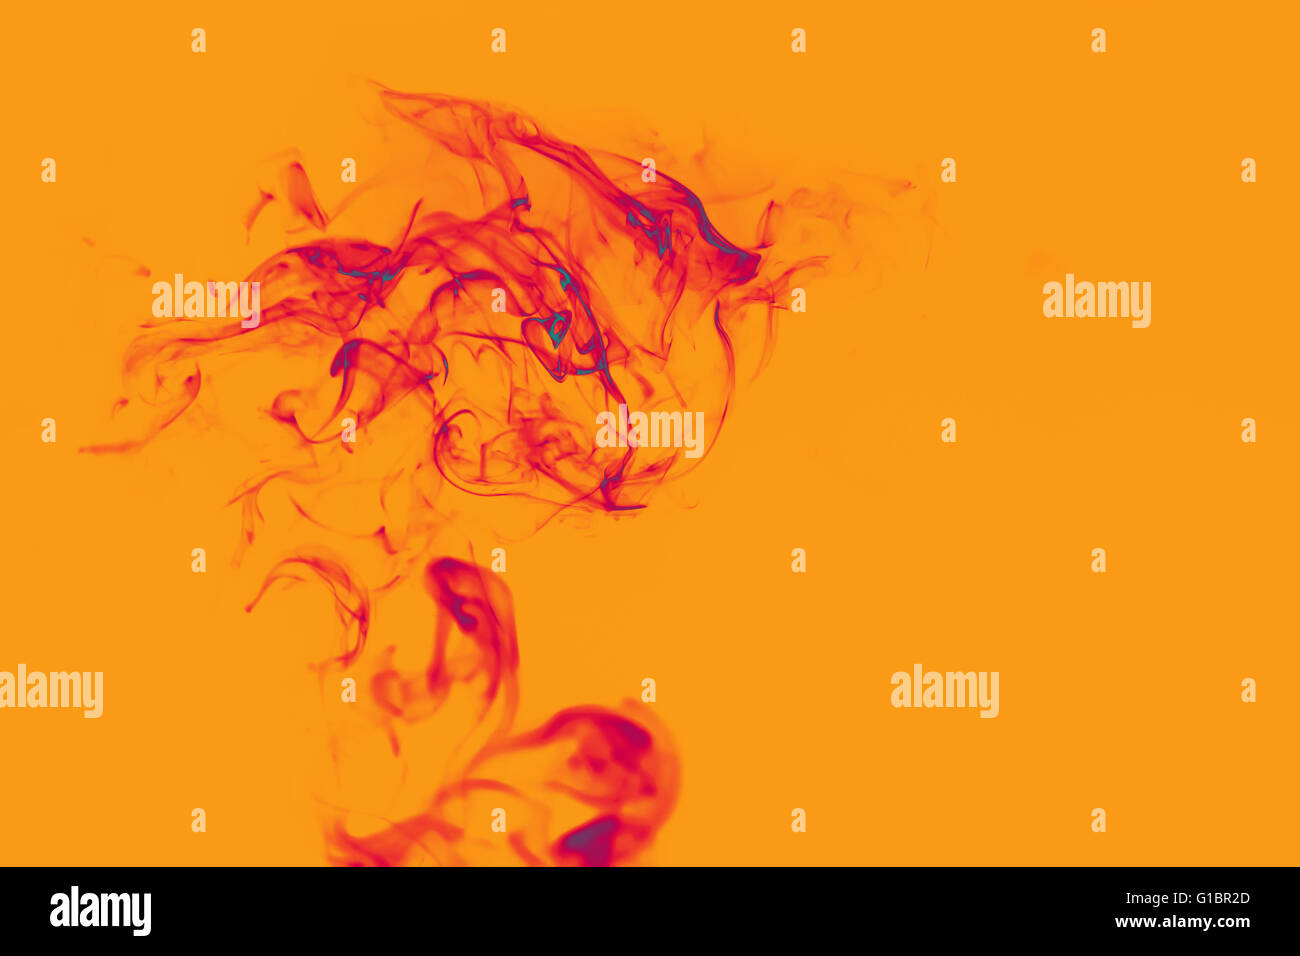 Nice abstraction with smoke in orange and red colours - Stock Image